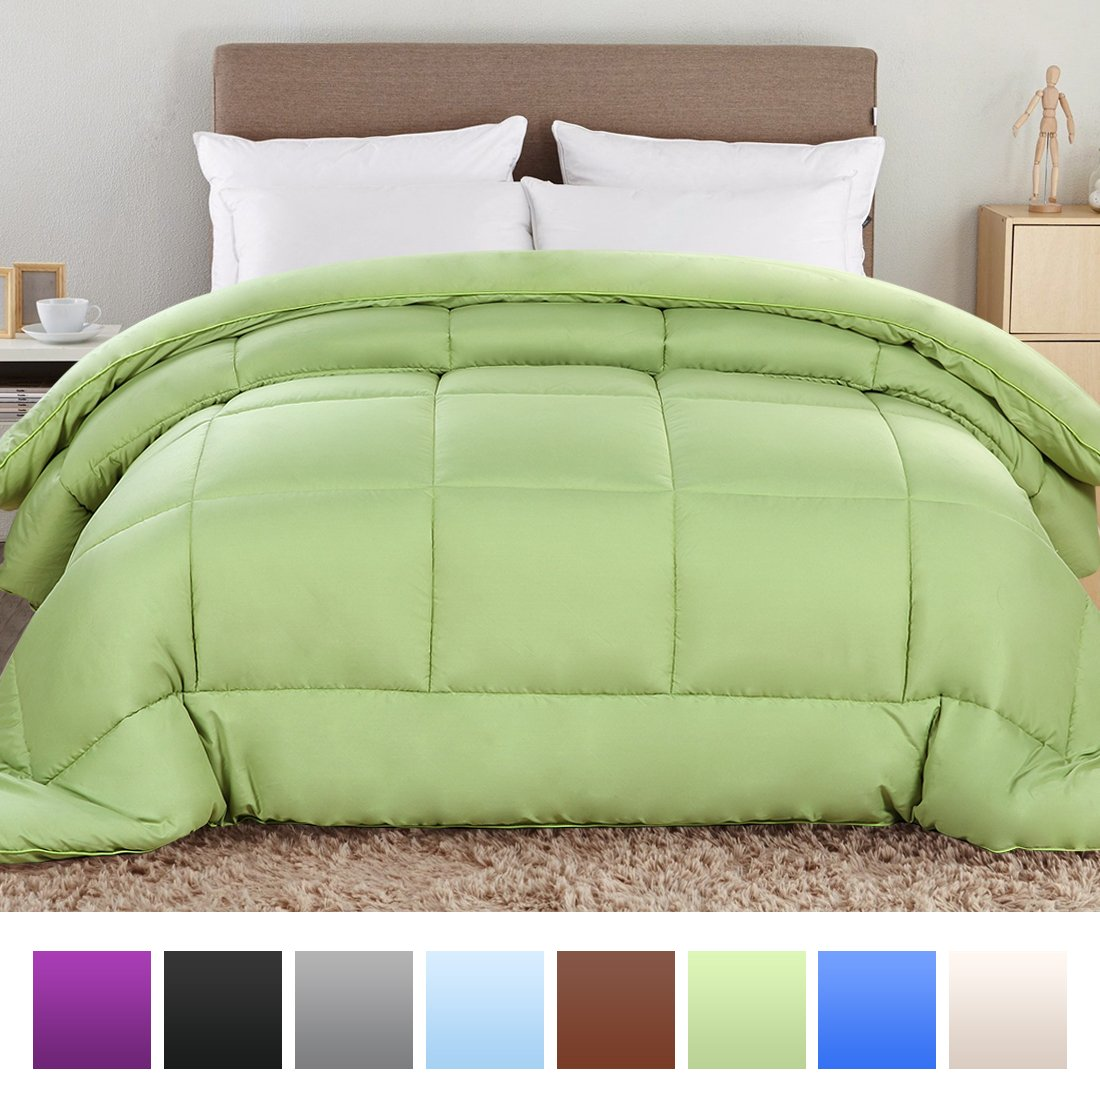 Balichun Summer Hotel Collection 1500 Series - Luxury Duvet Insert Goose Down Alternative Quilted Comforter Light Green